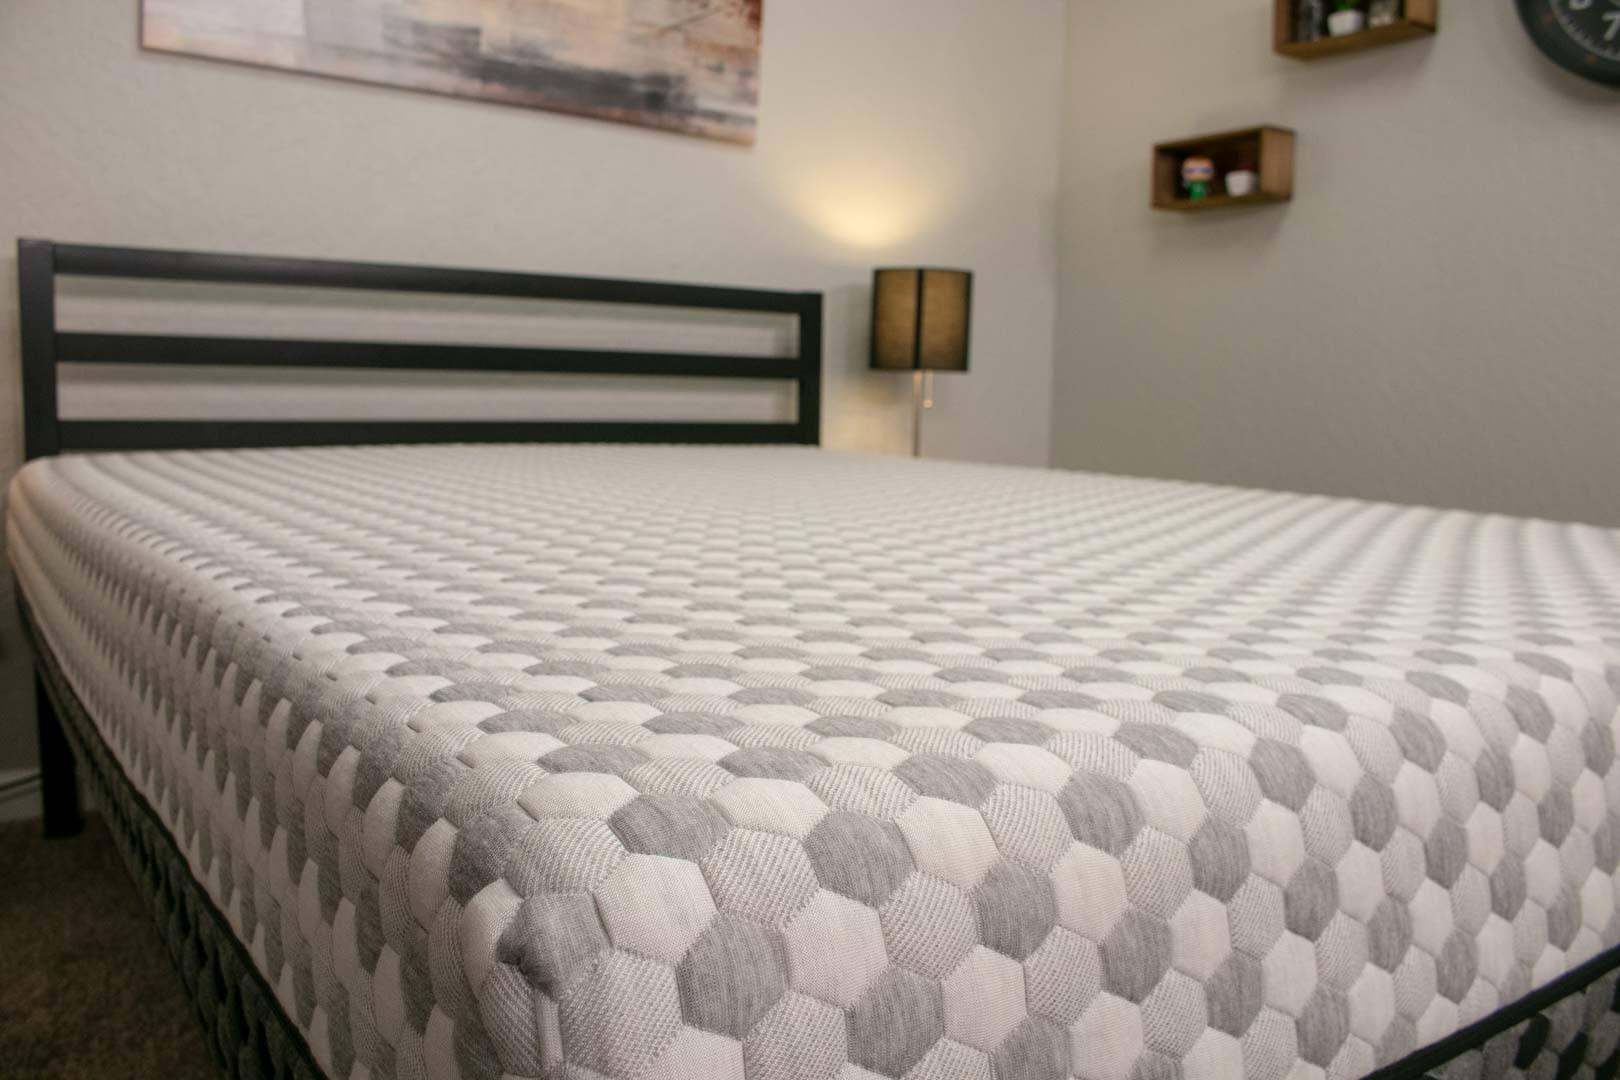 layla mattress review cover soft and firm side